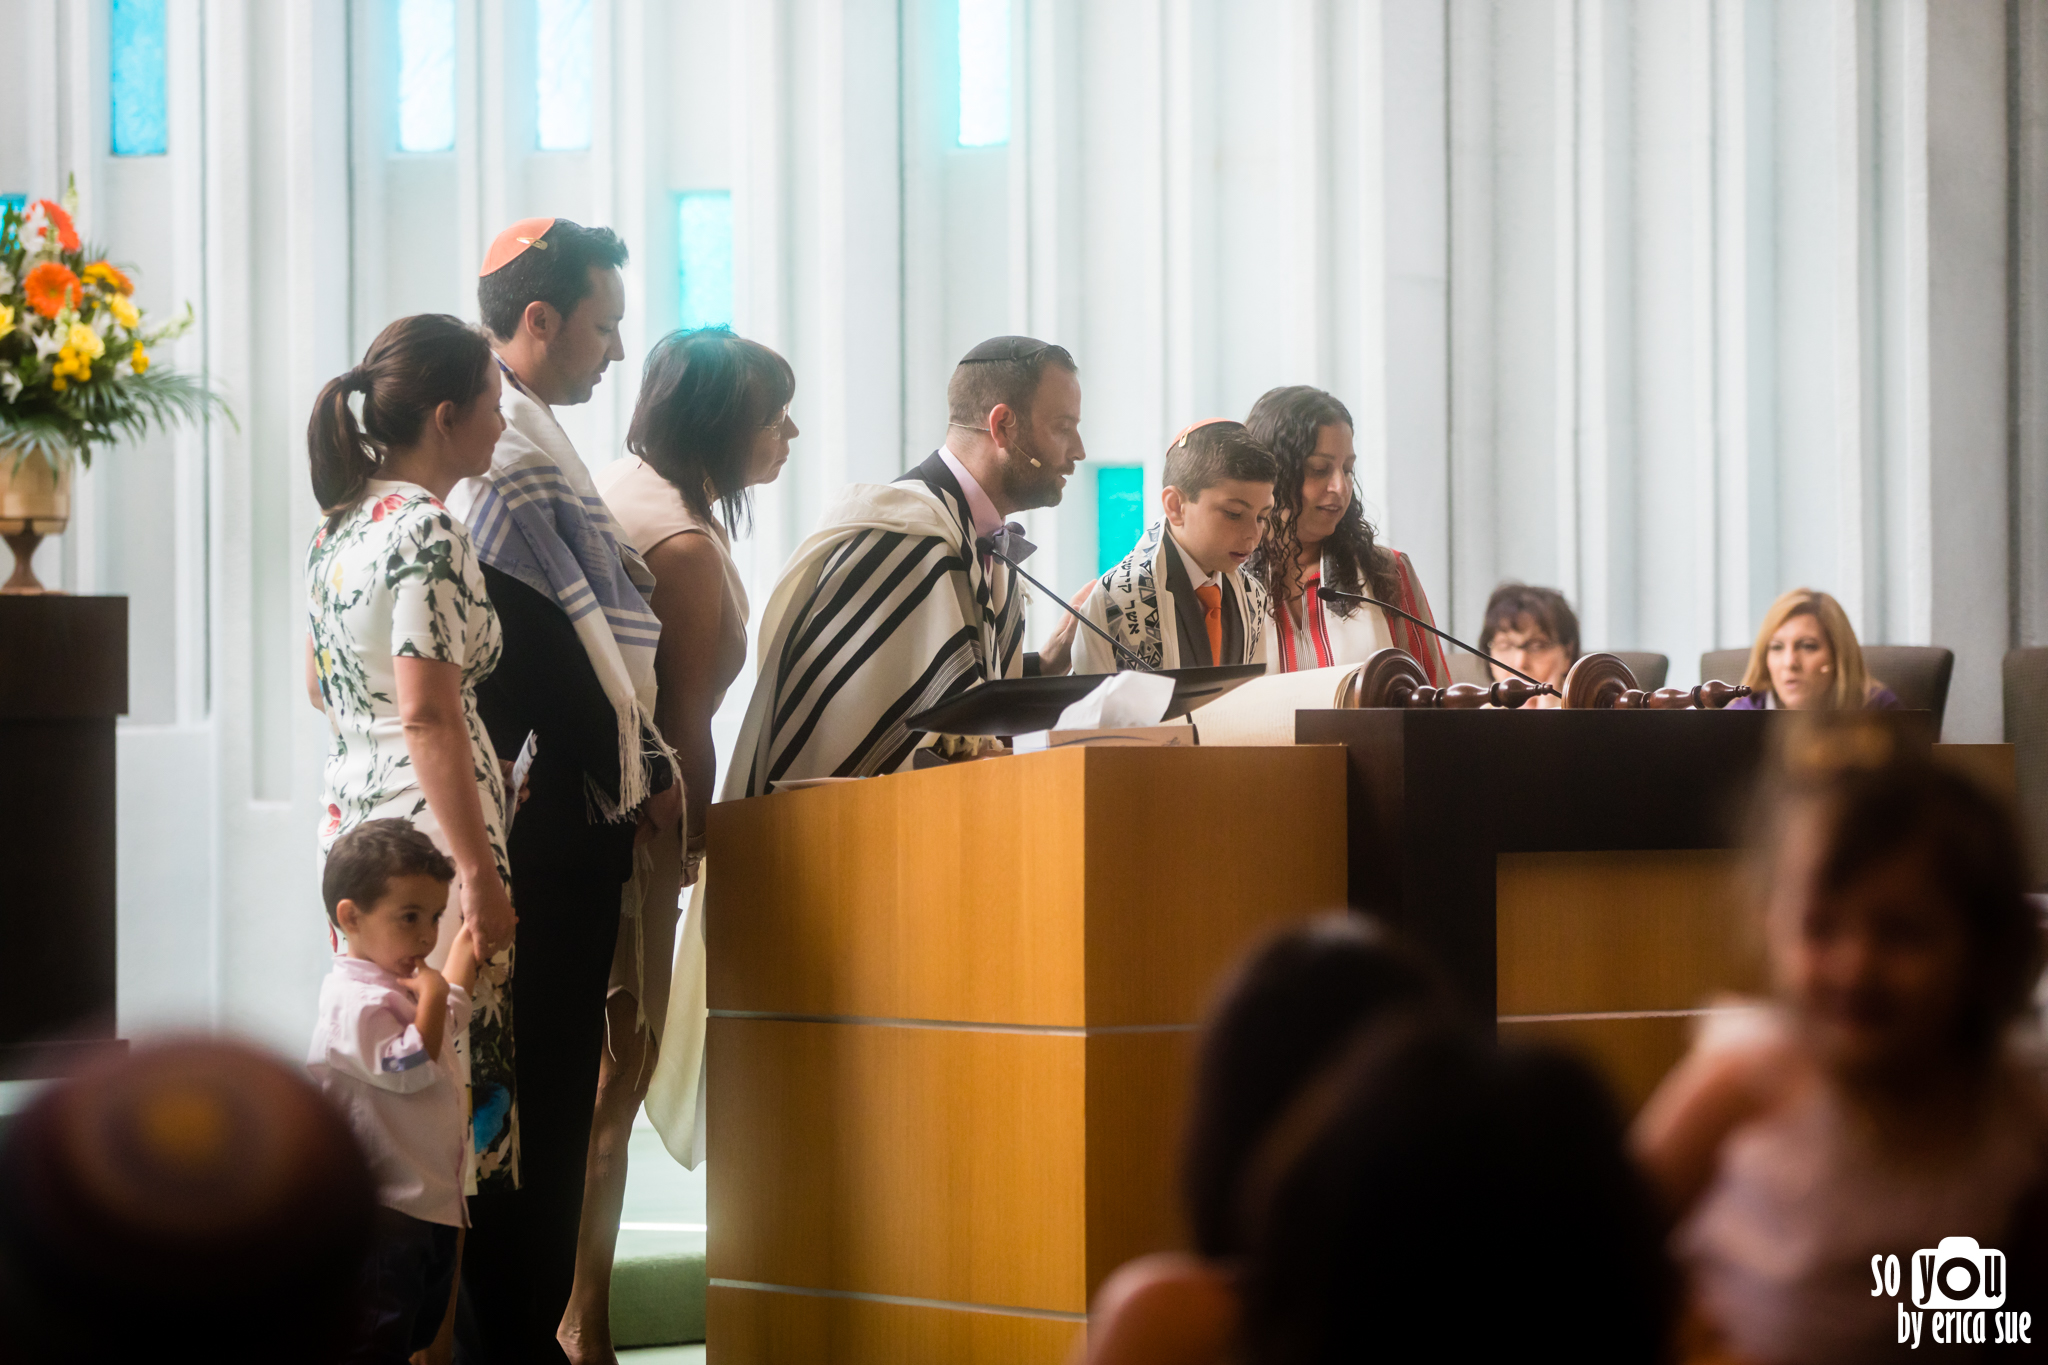 so-you-by-erica-sue-mitzvah-photographer-temple-judea-coral-gables-university-of-miami-hillel-1863.jpg